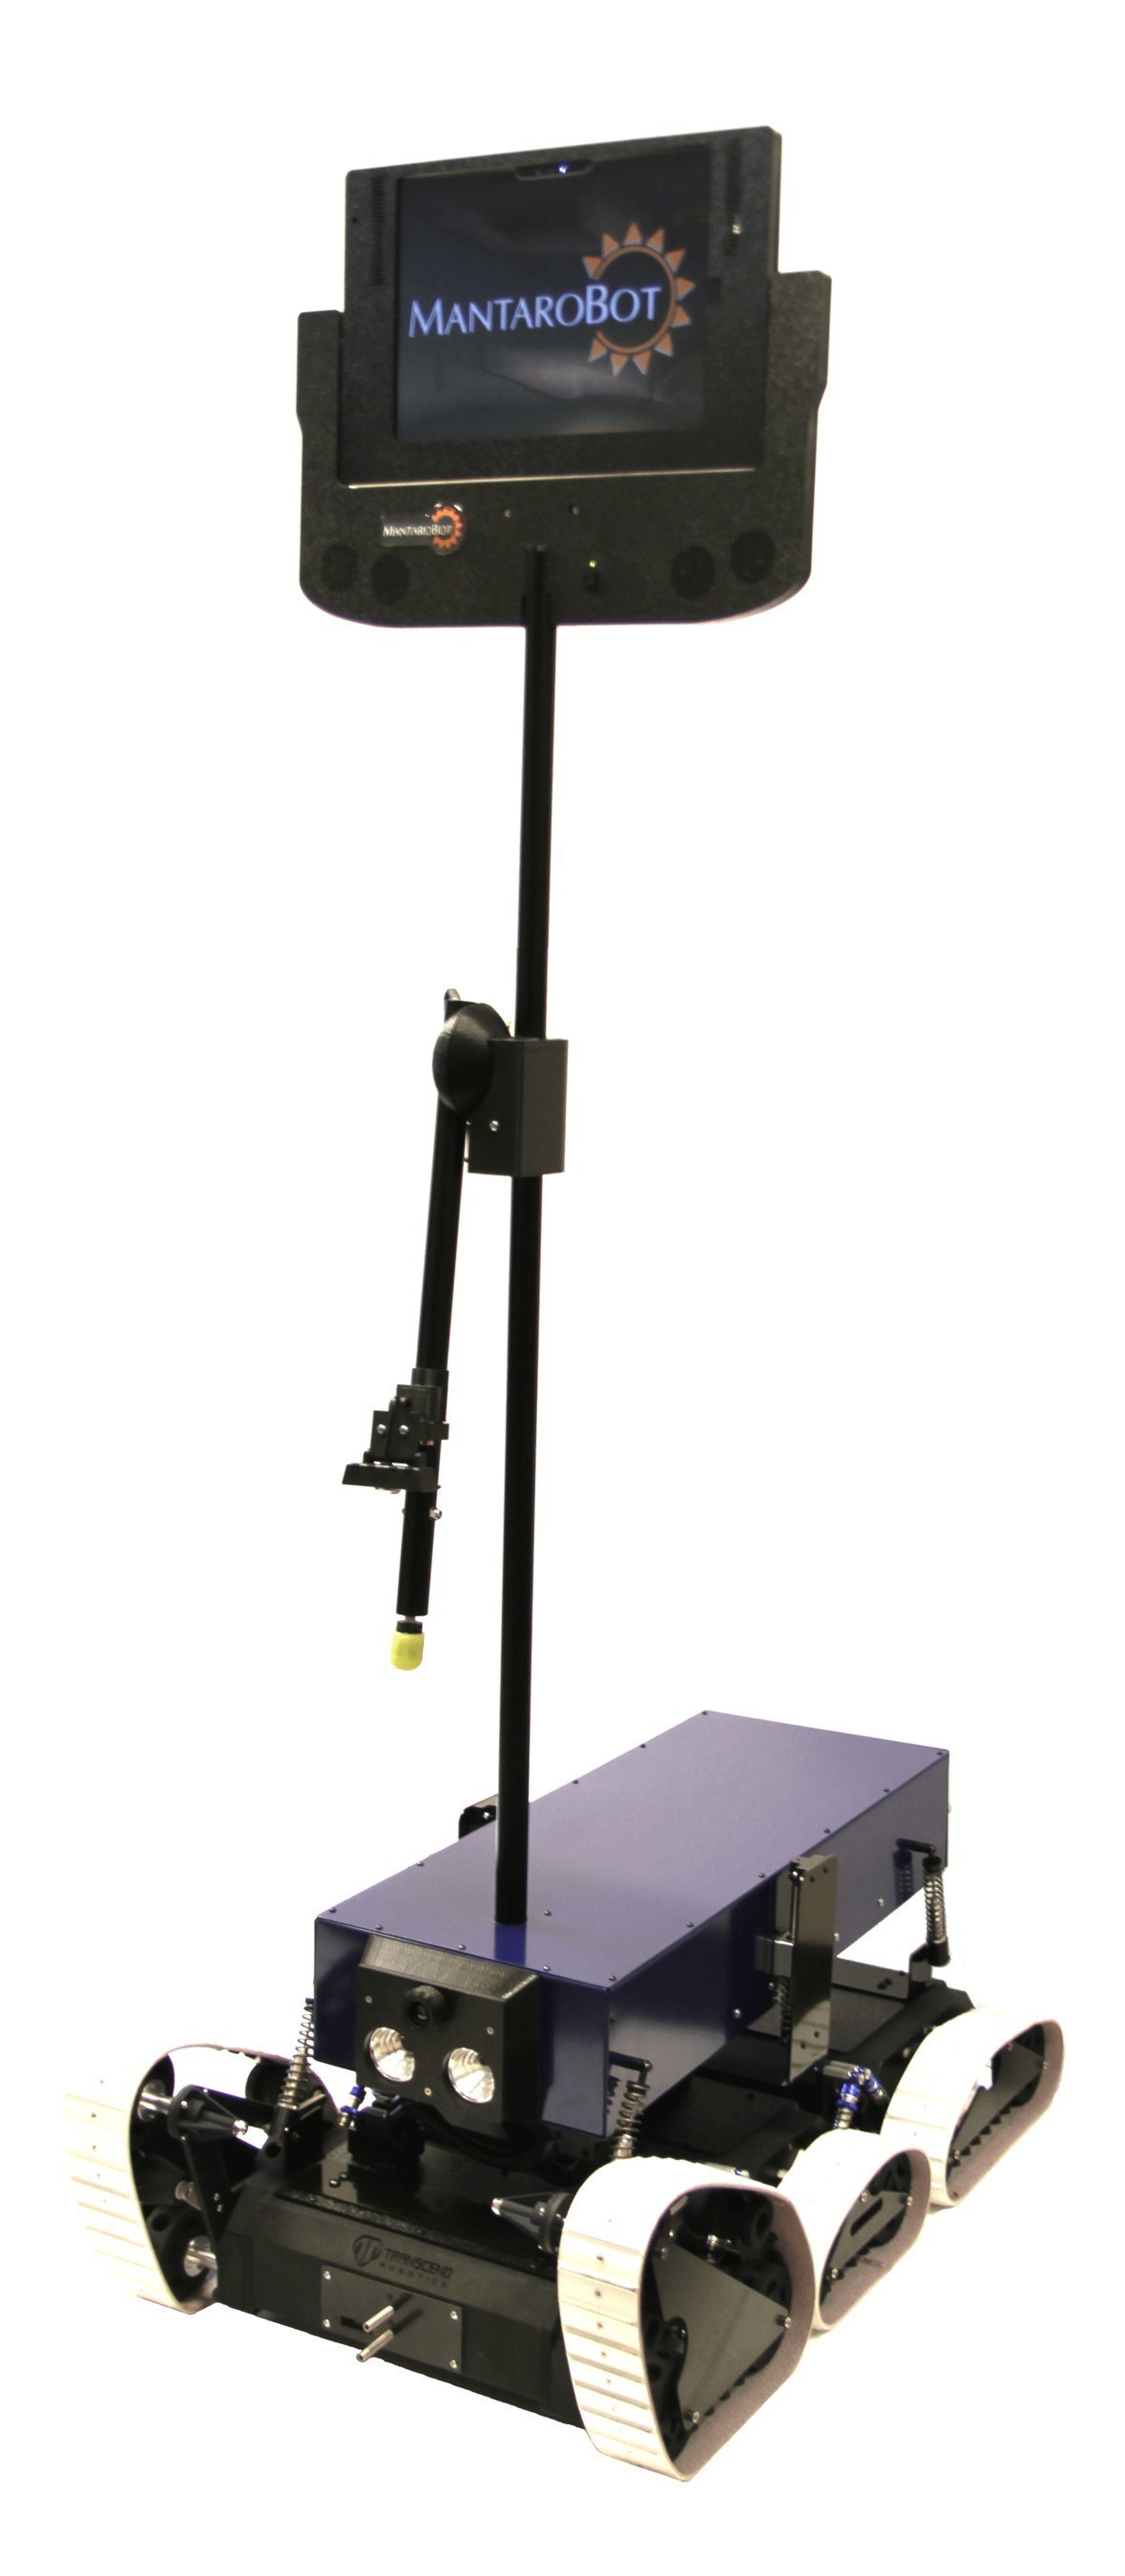 Mantaro Introduces the MantaroBot TeleTrak Telepresence Robot for Rugged Industrial, Manufacturing, and Construction Environments